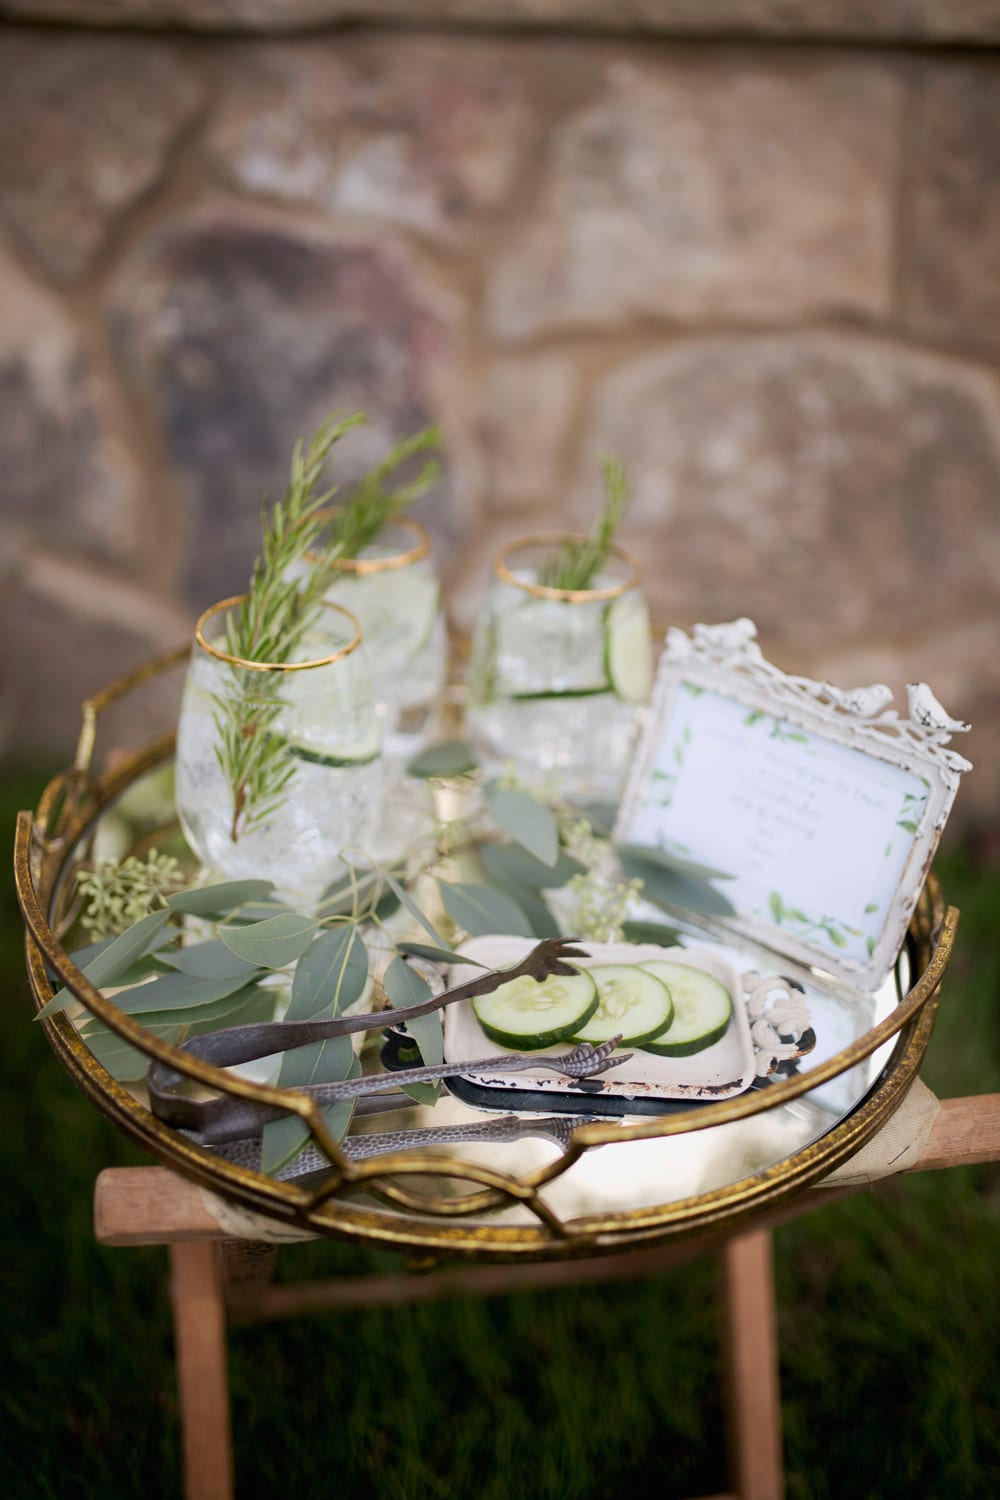 Drinks on glass table in front of stone wall